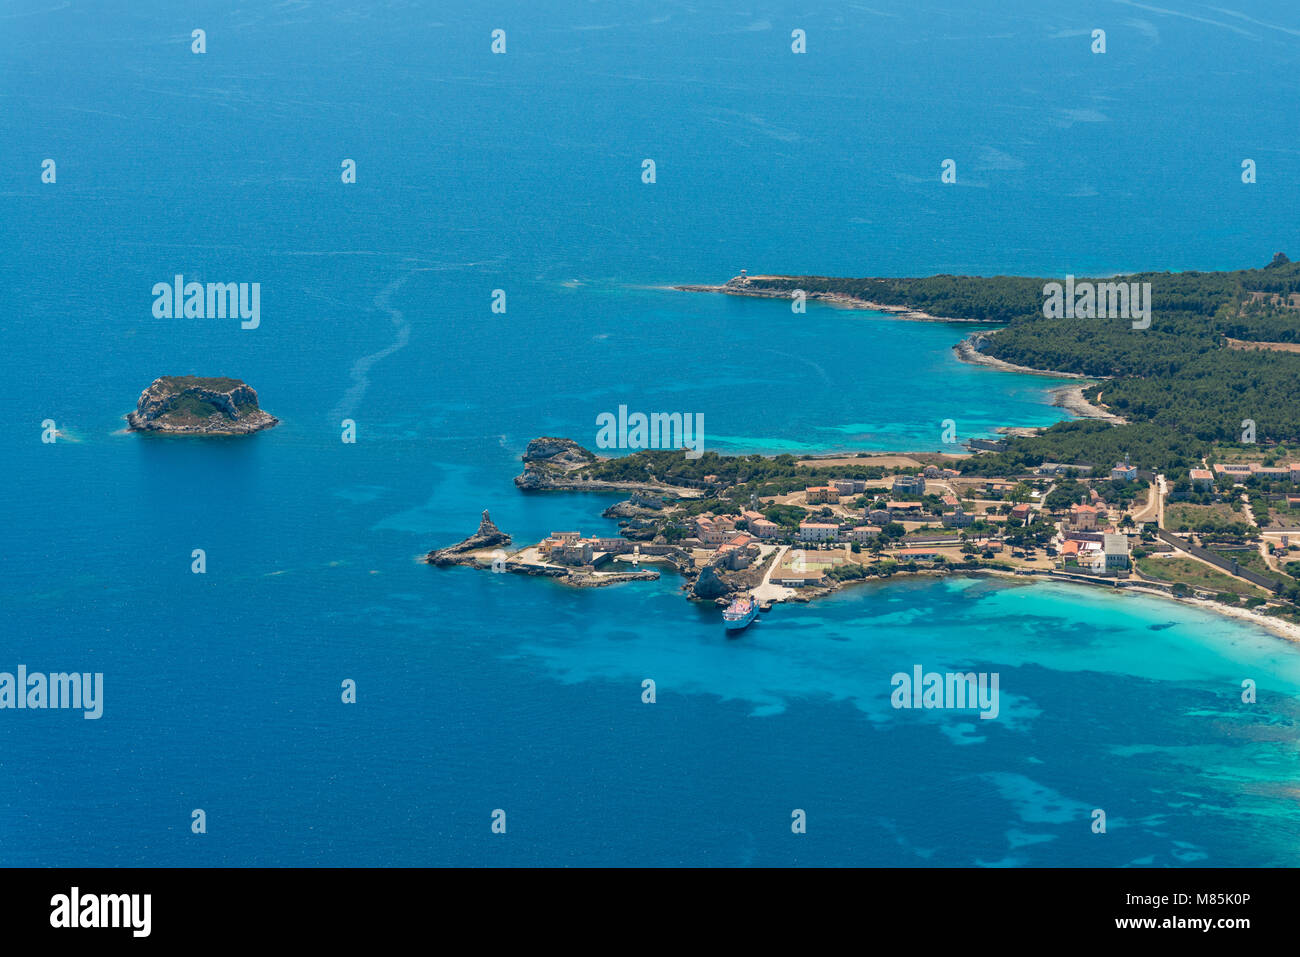 Aerial image of Isola de Pianosa (Pianosa Island), a former penal colony island established by Leopold II, Grand - Stock Image